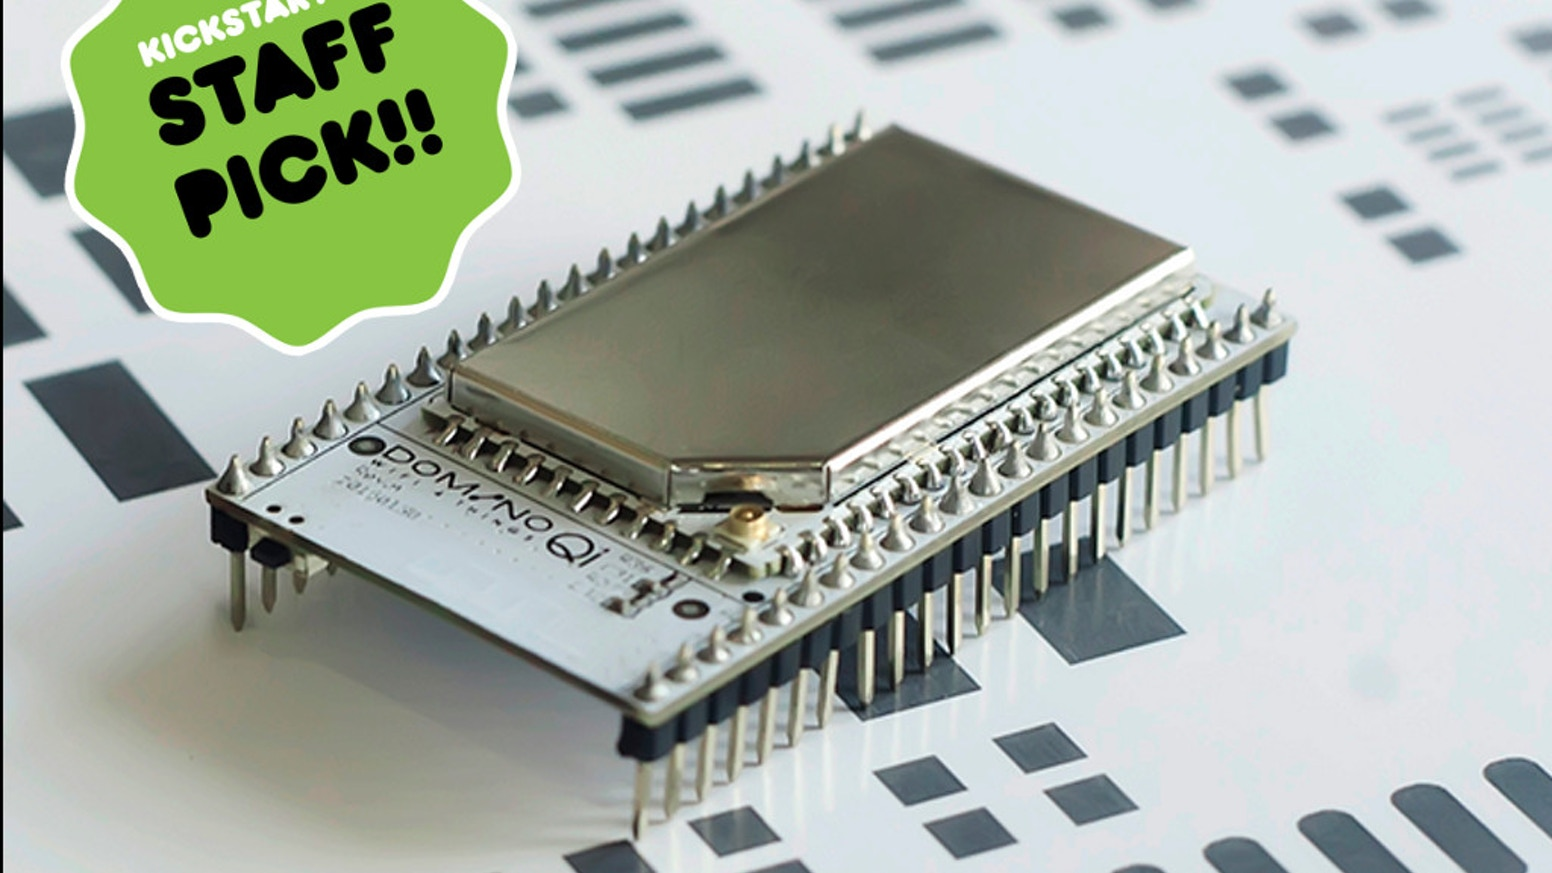 Domino Io An Open Hardware Wifi Platform For Things By Dominoio Circuit Boards Like Magic Appears Is Affordable And Advanced Full